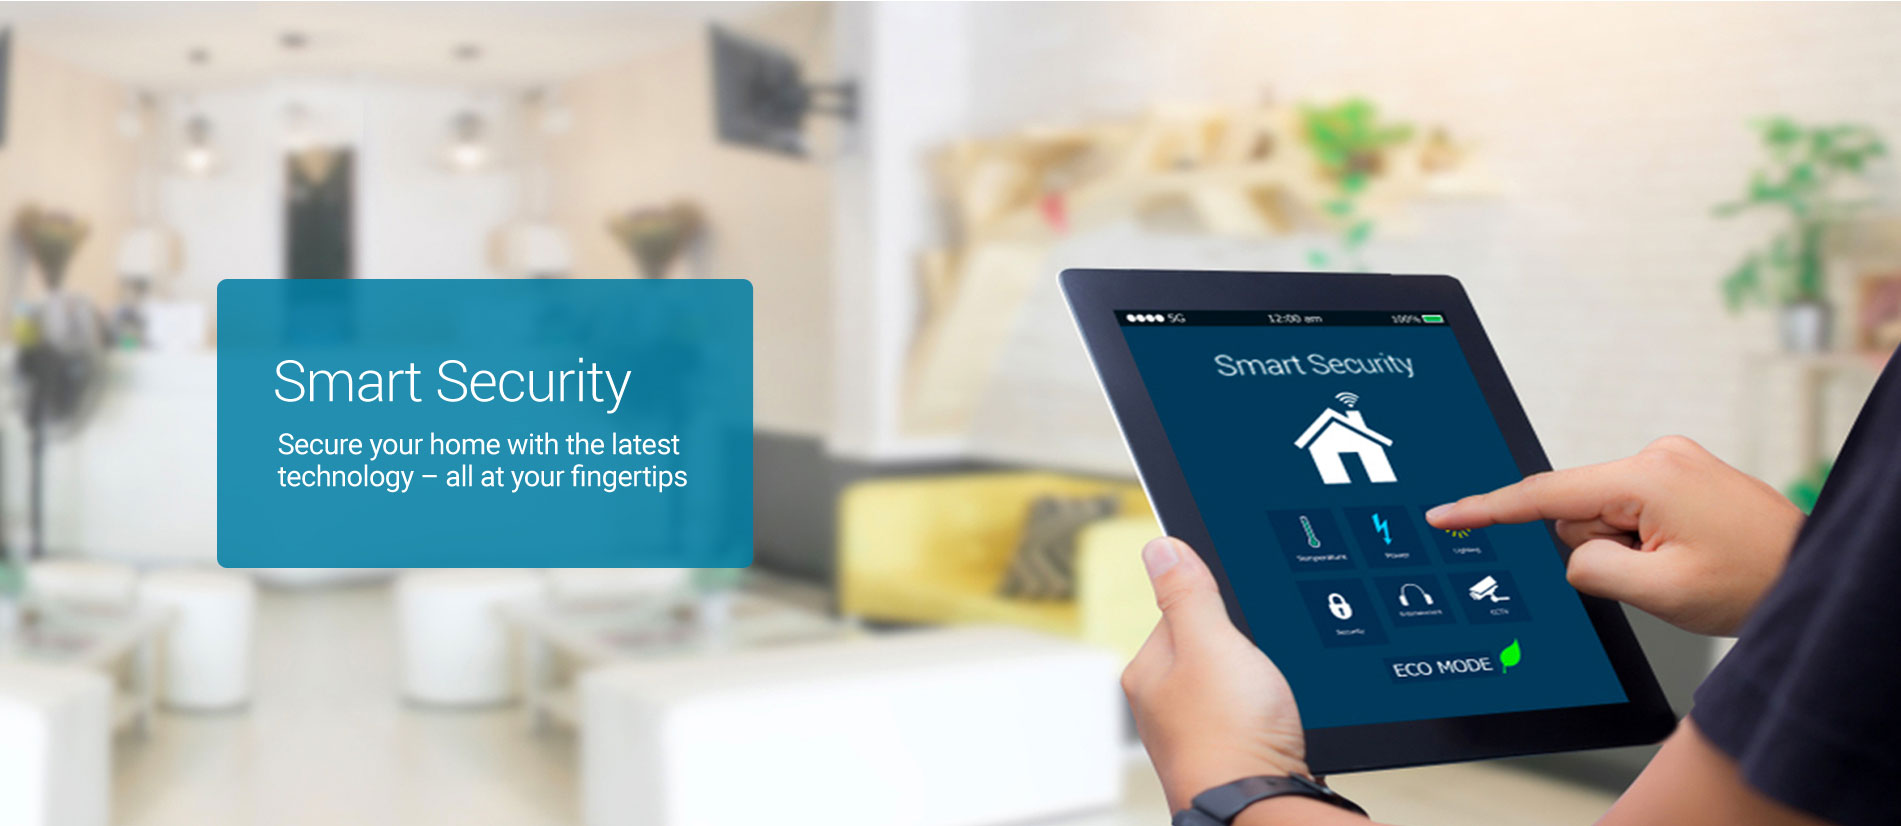 Smart security solution for home